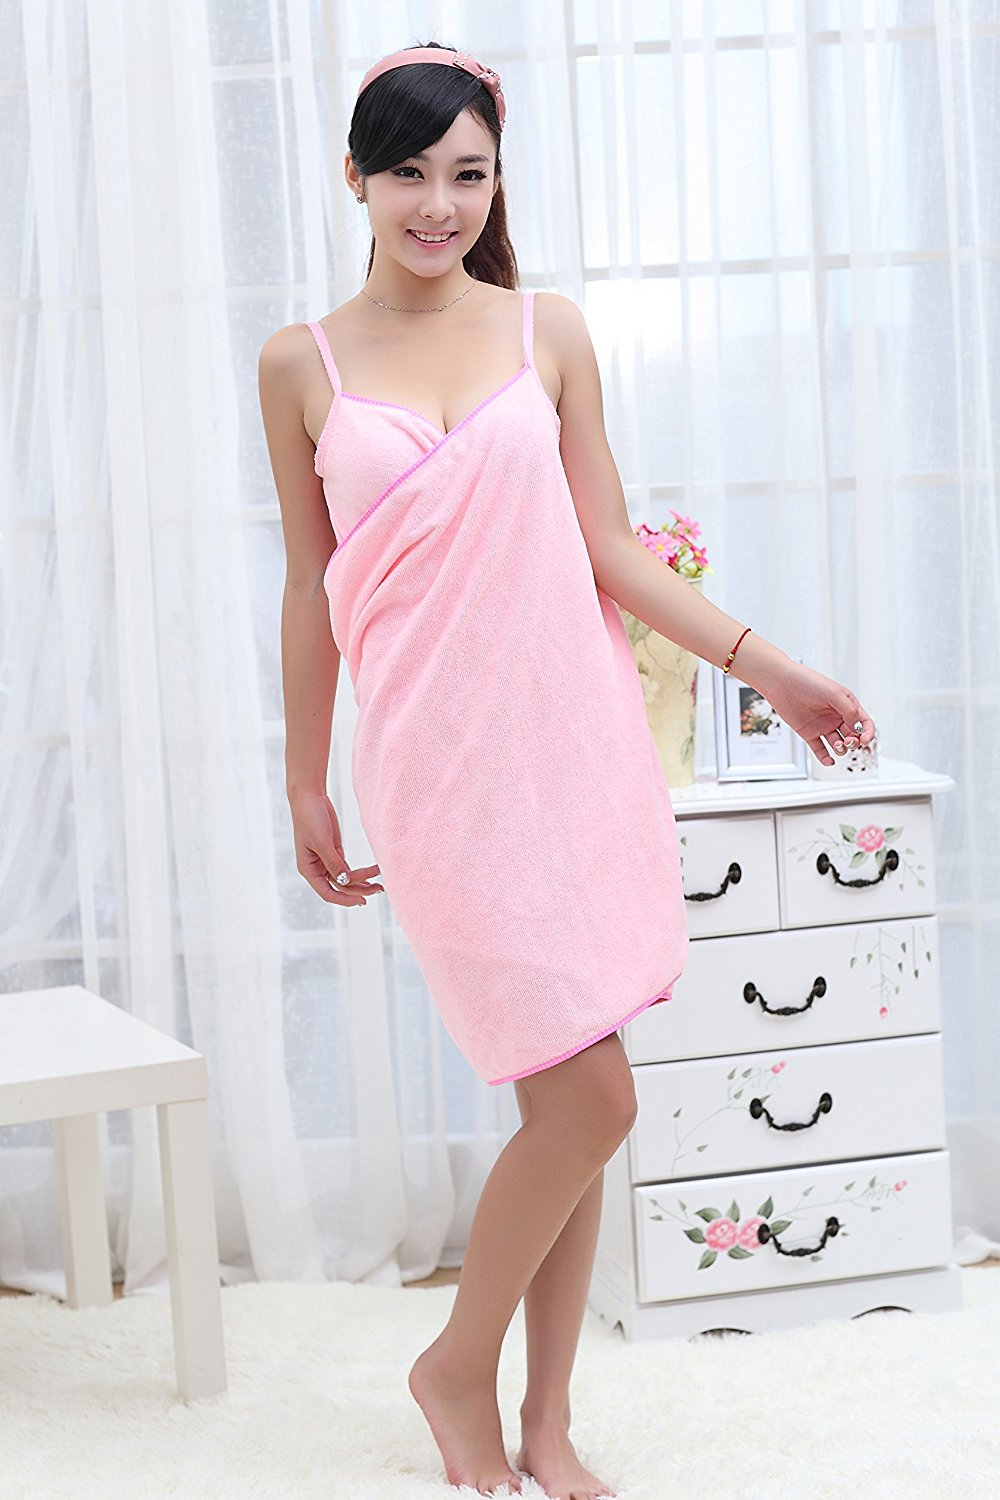 Microfiber Soft Shoulder Straps Wearable Bath Towel Beach Cloth Beach Spa Bathrobes Bath Skirt Pink 59 x 27.5